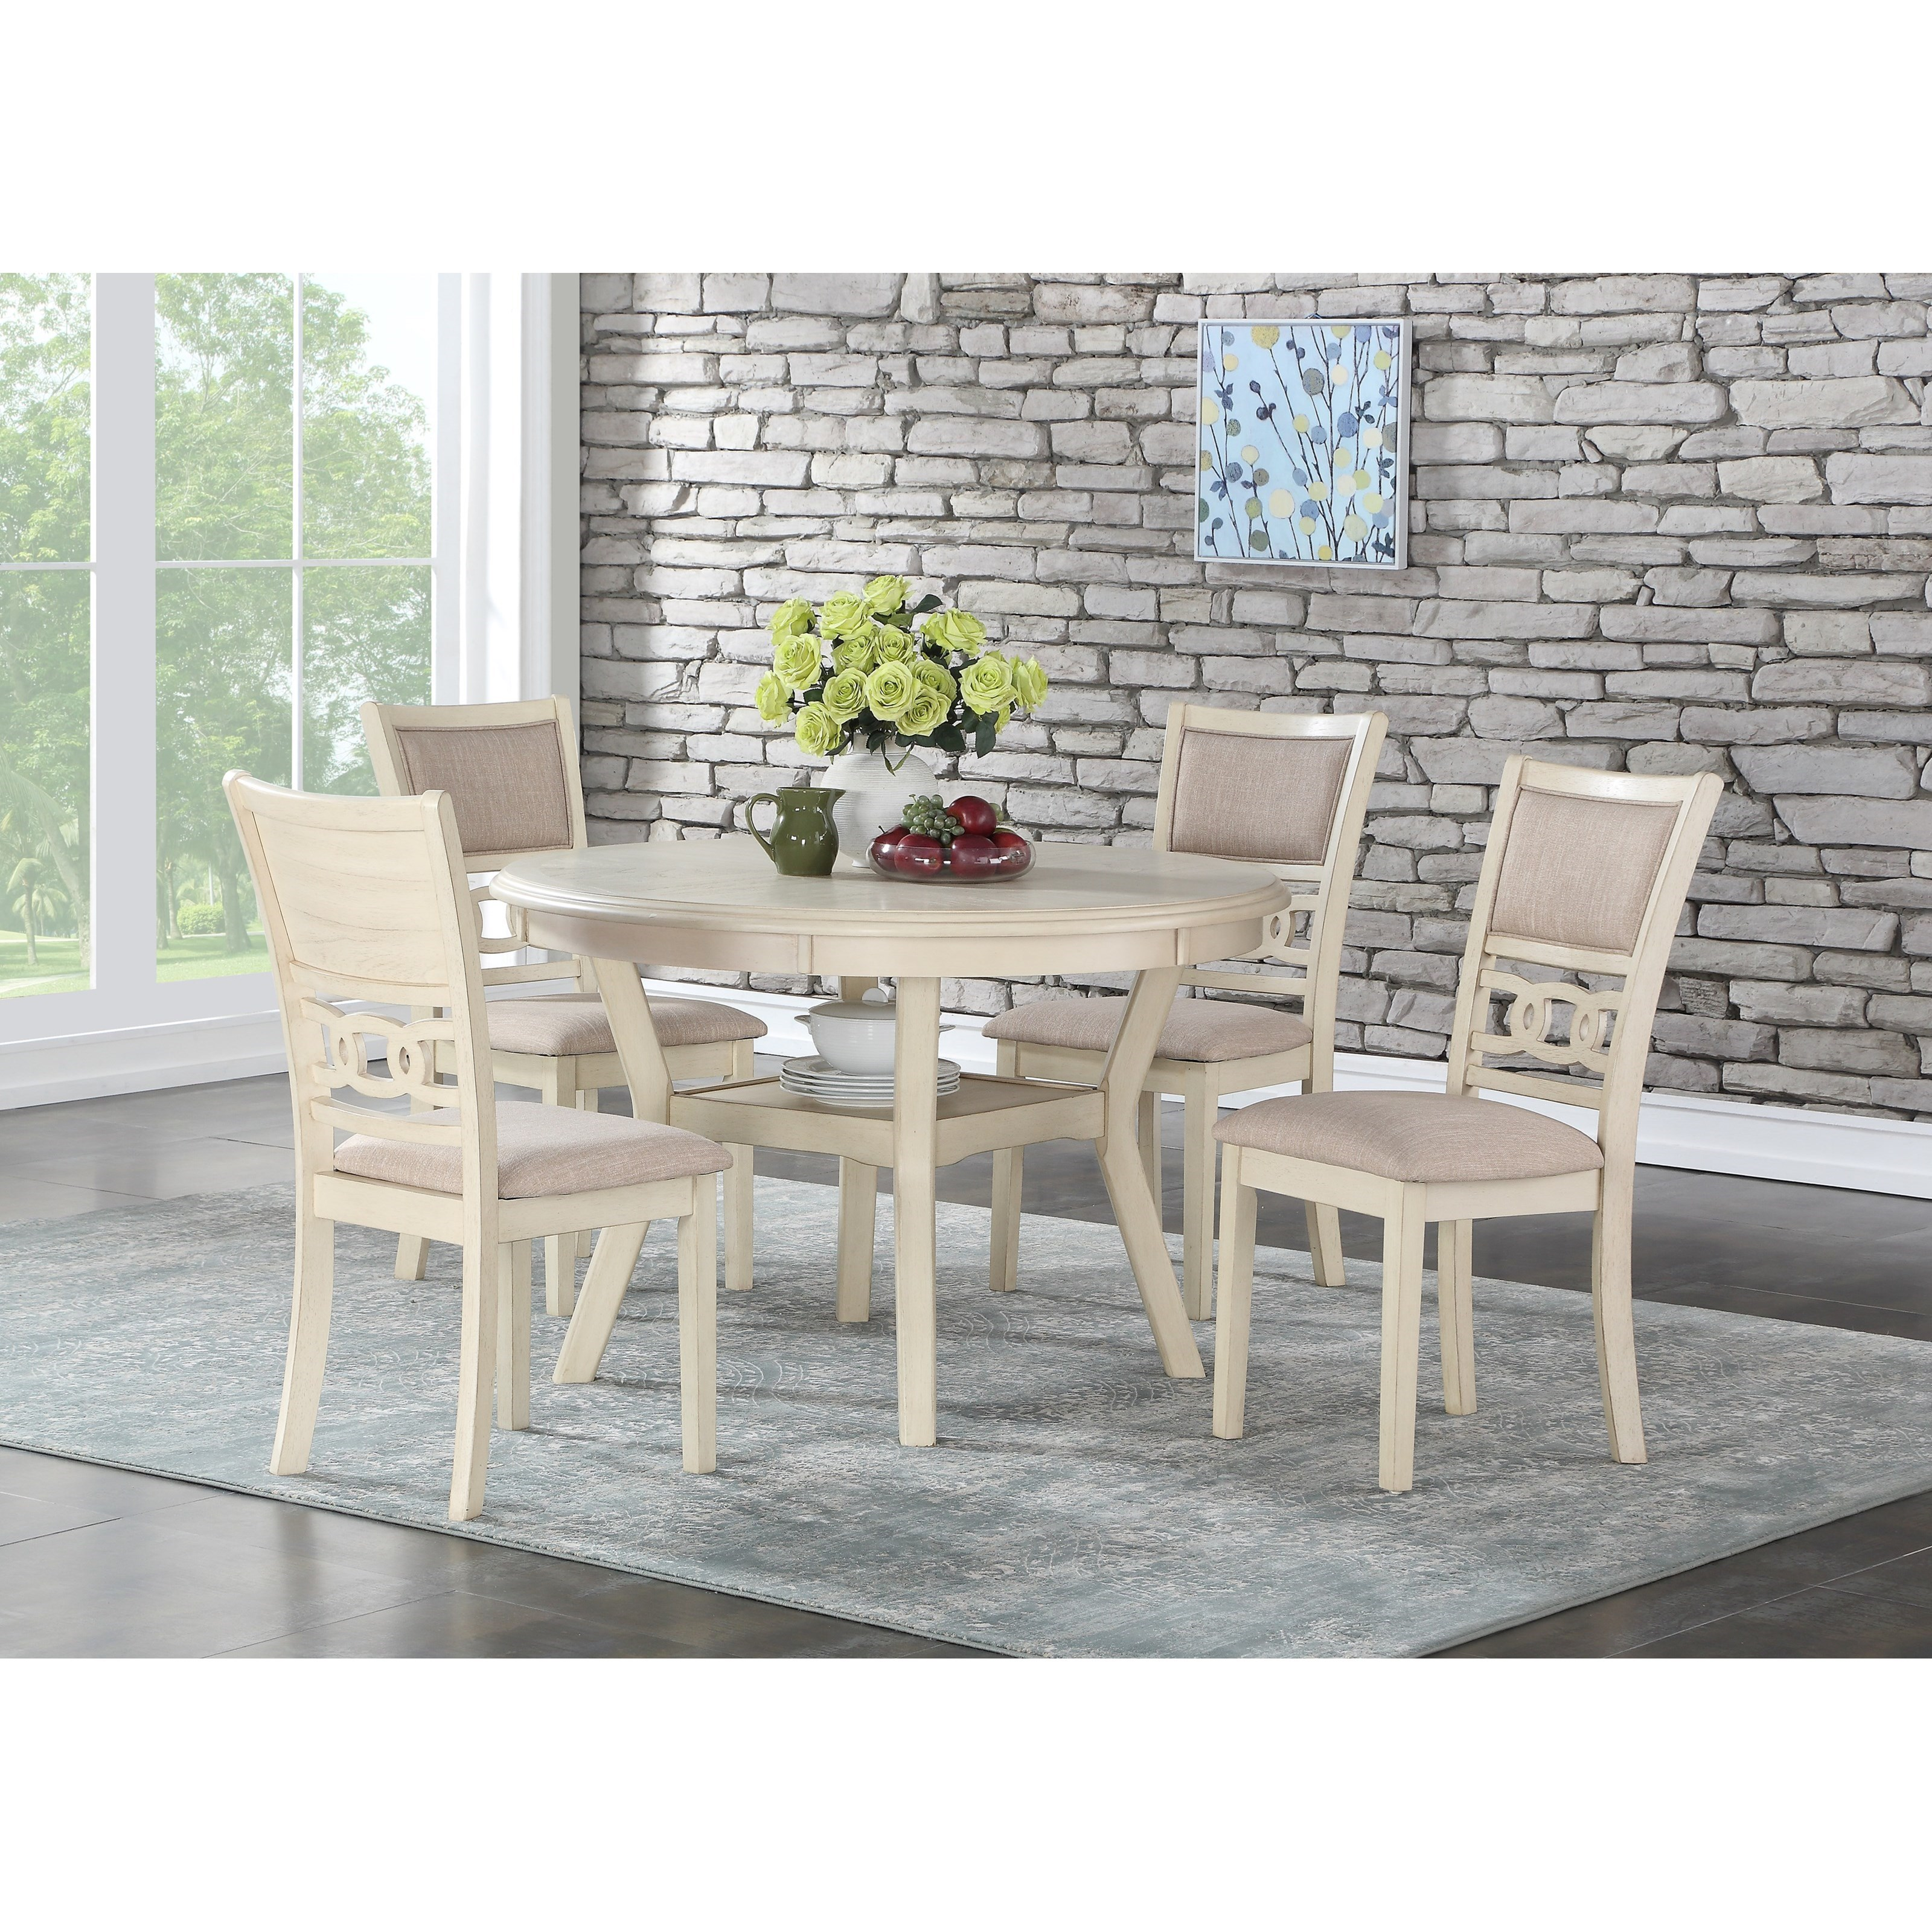 Gia Dining Table and Chair Set with 4 Chairs by New Classic at Beds N Stuff